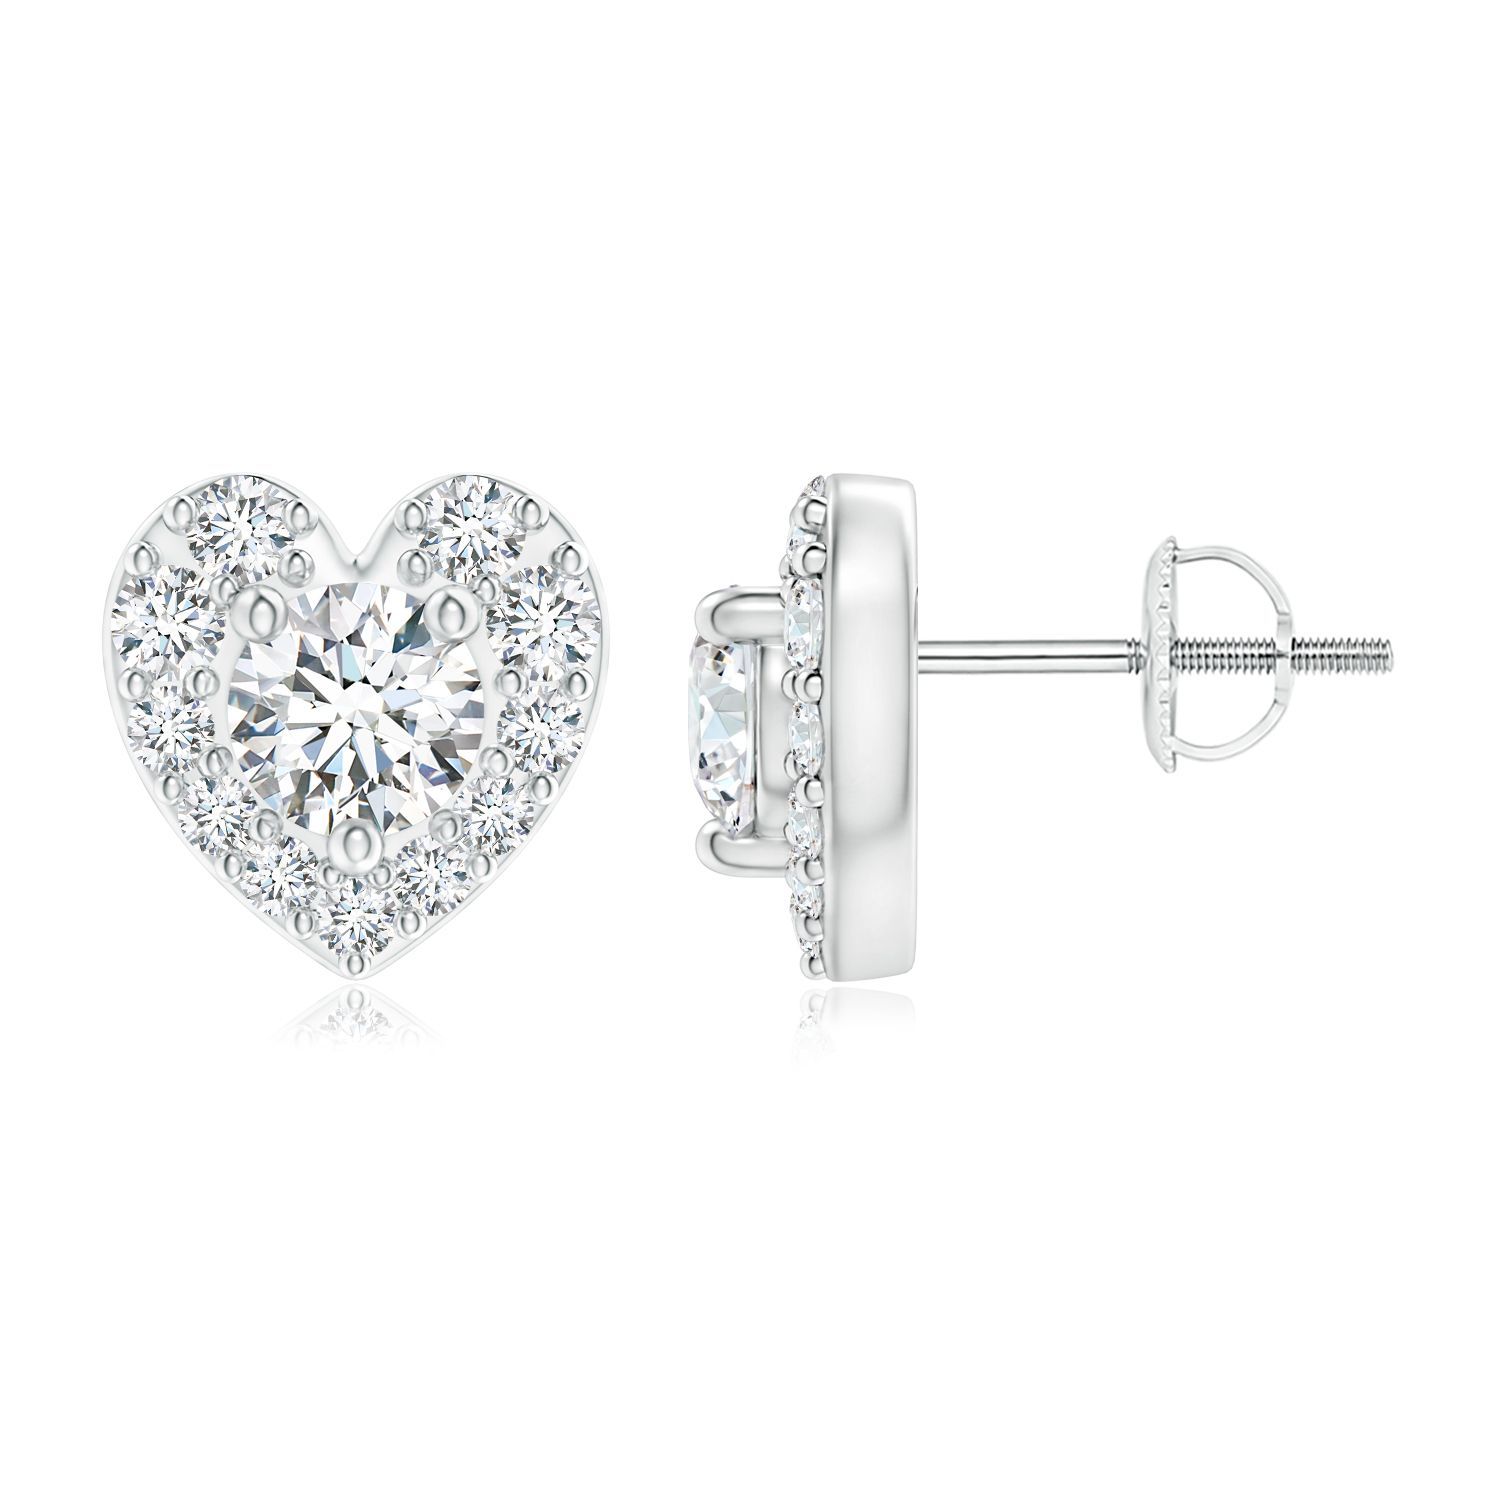 Angara Diamond Solitaire Earrings in White Gold b2tdBAuqWs